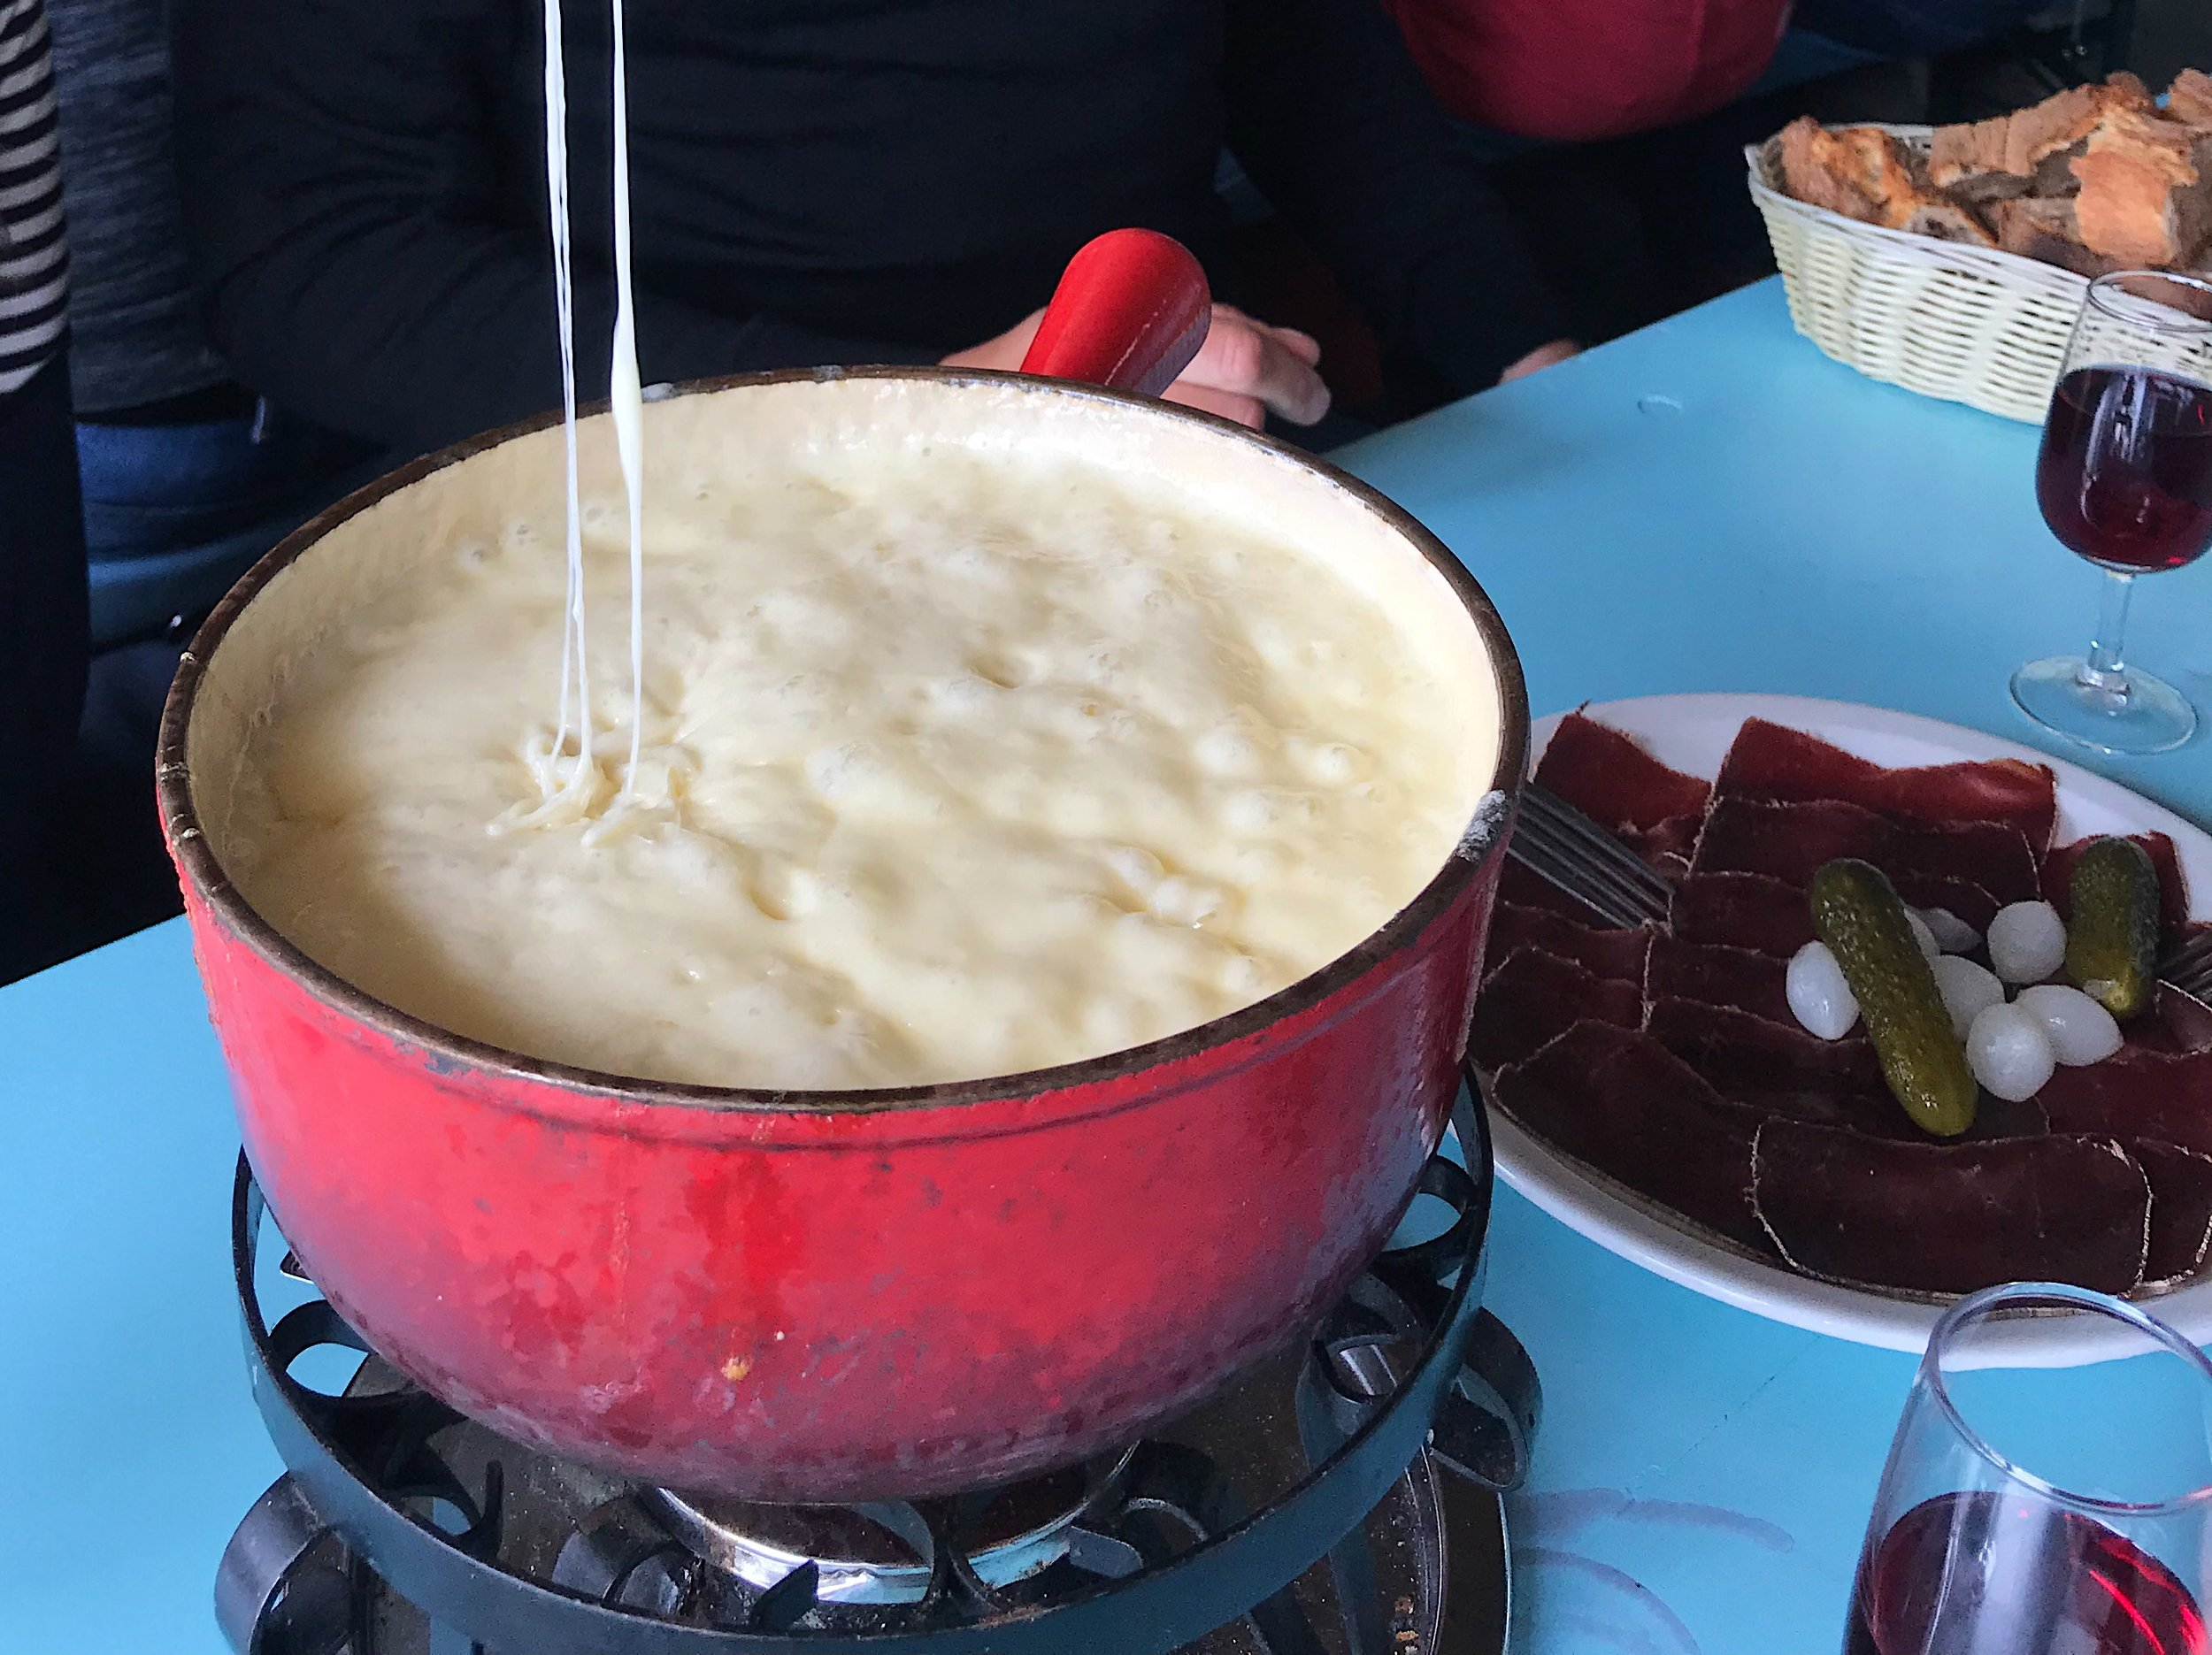 The fondue au crémant (fondue with sparkling wine) in all of its cheesy, bubbling glory